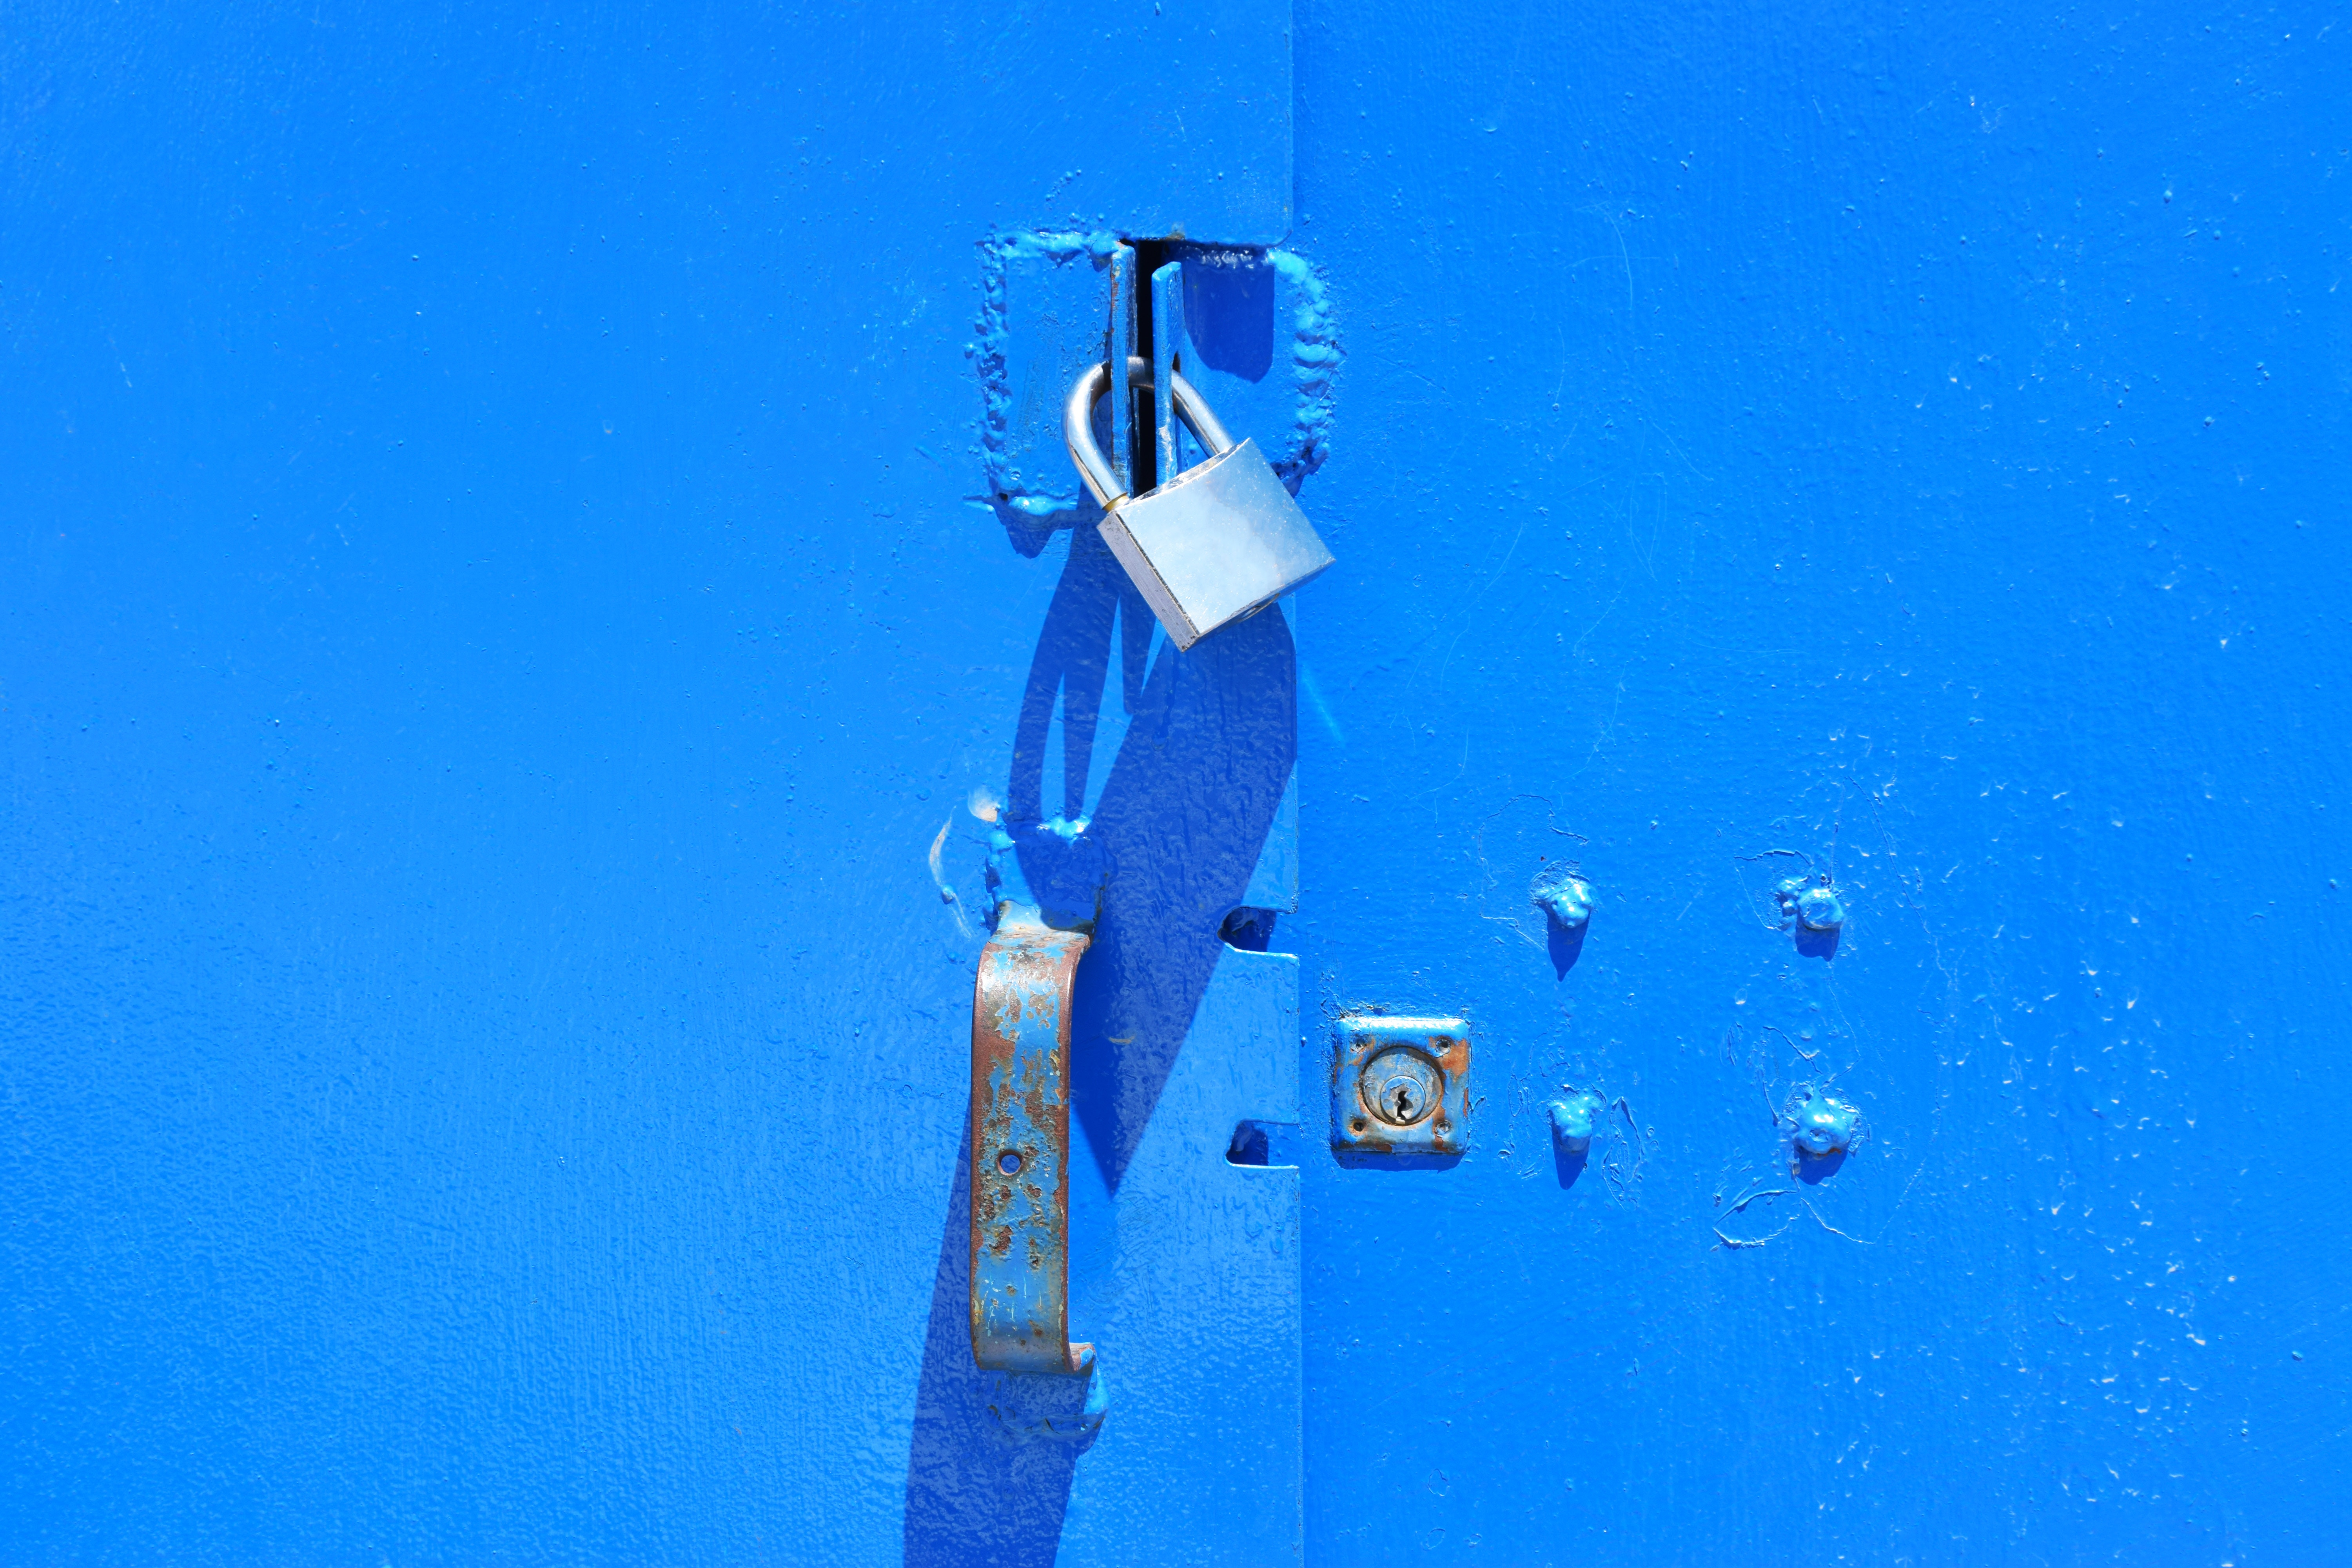 A lock securing a blue window as Screenly secures your digital signage.